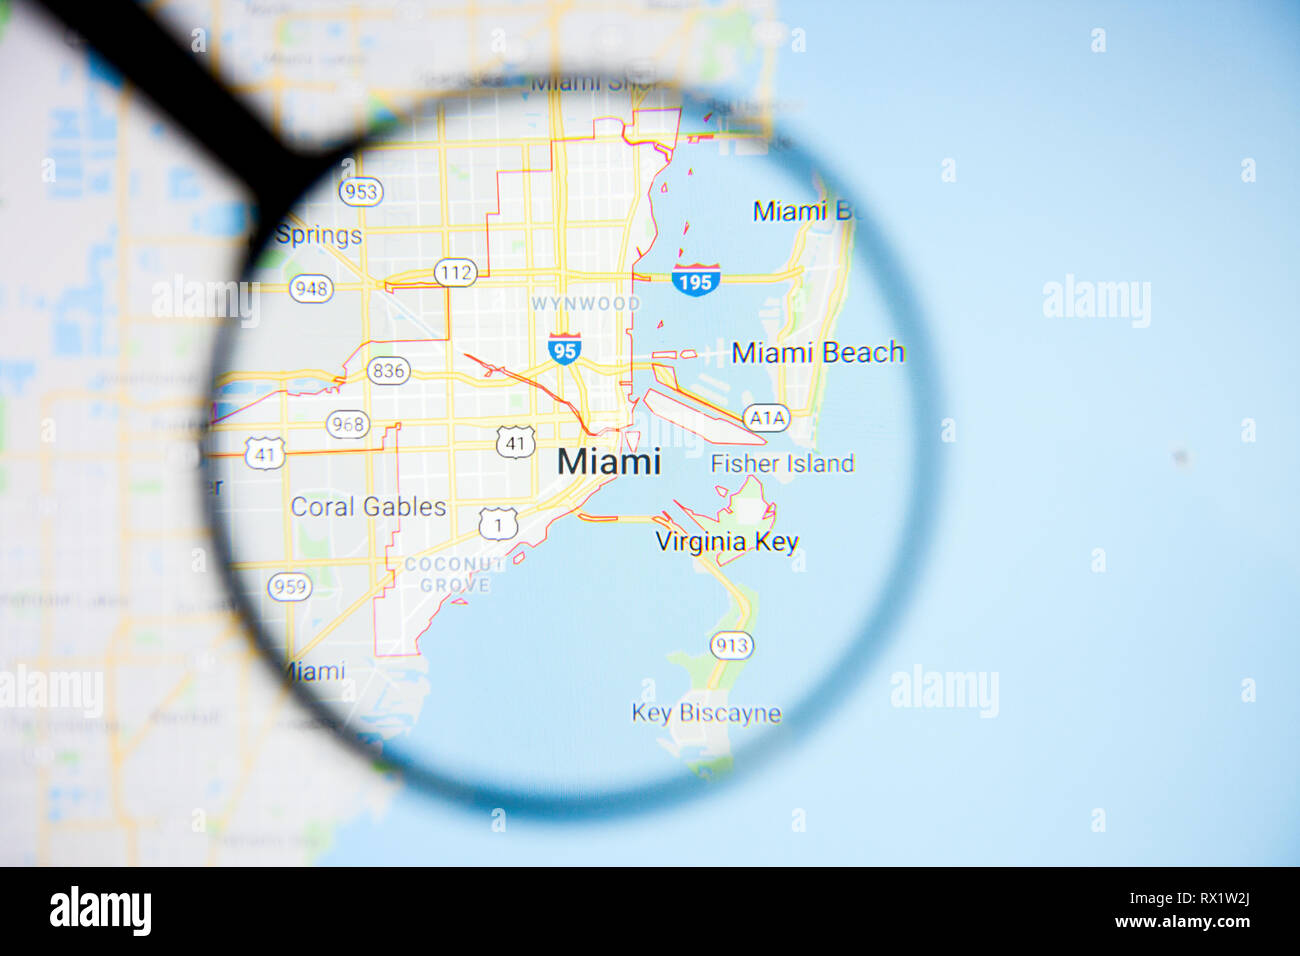 Miami city visualization illustrative concept on display screen through magnifying glass - Stock Image